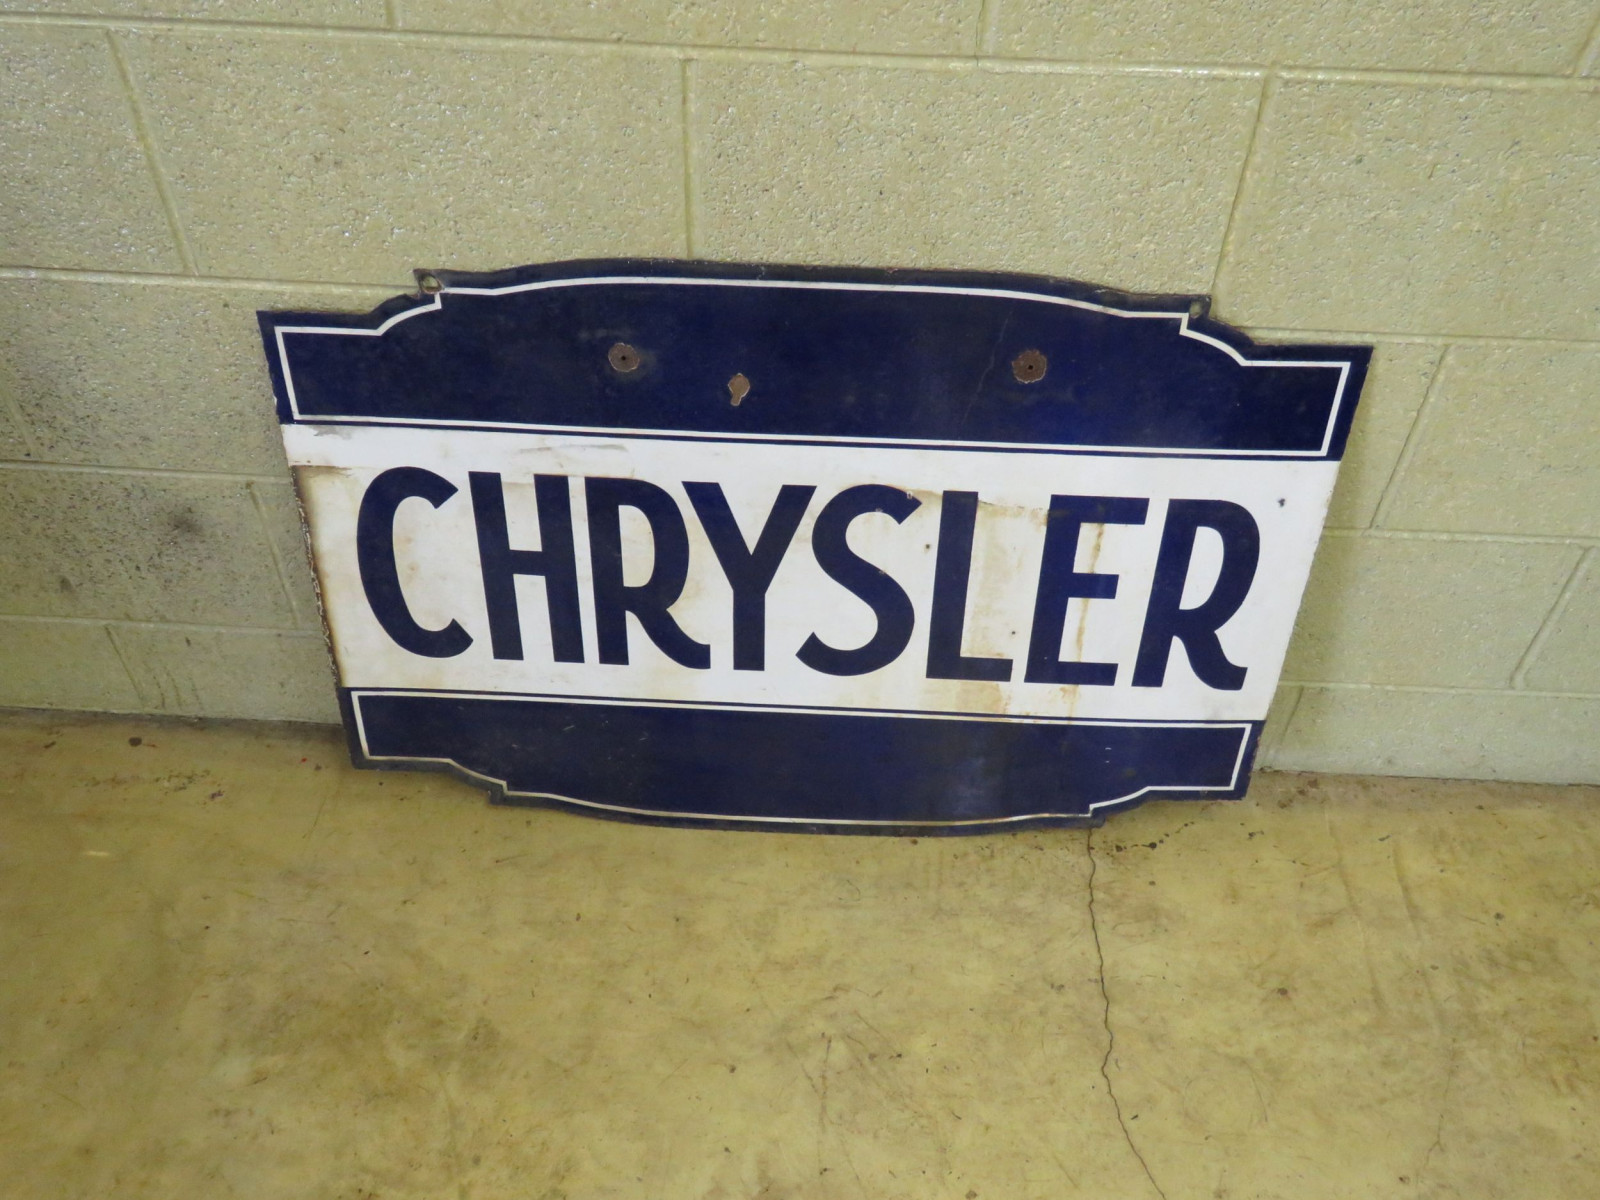 Chrysler Porcelain Sign - Image 2